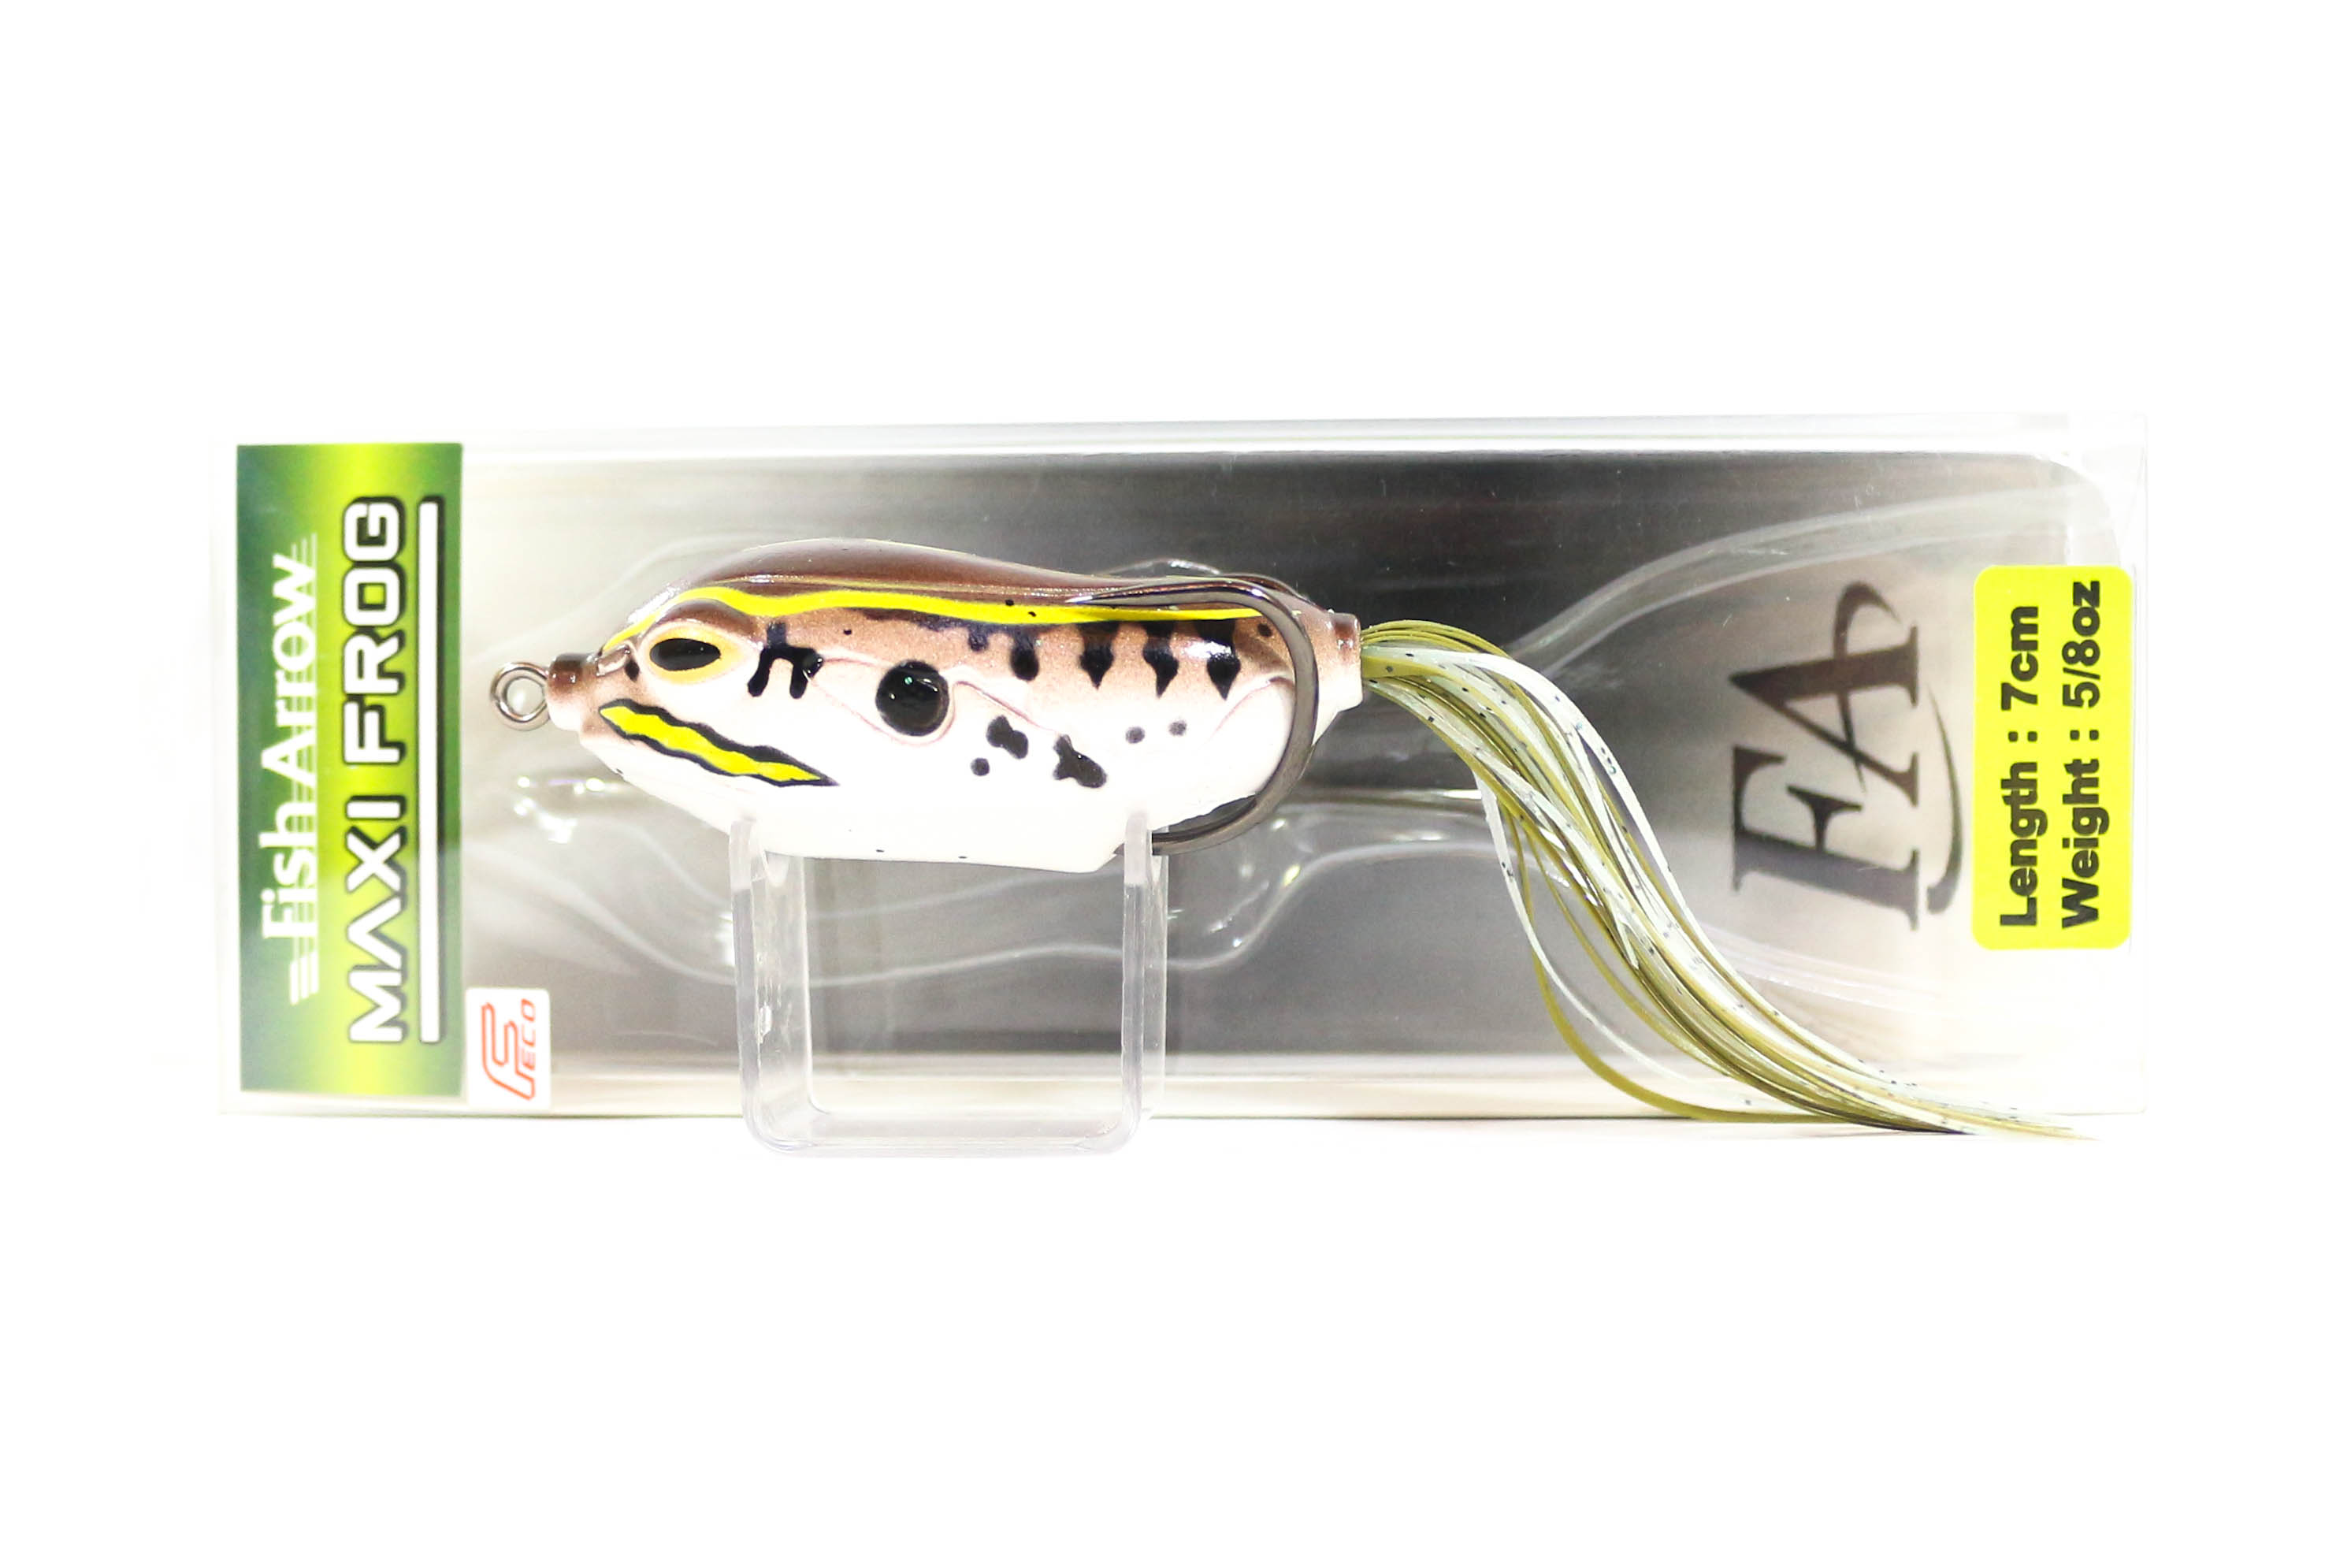 Fish Arrow Maxi Frog 7 cm 5/8 oz Soft Plastic Floating Lure 02 (4163)